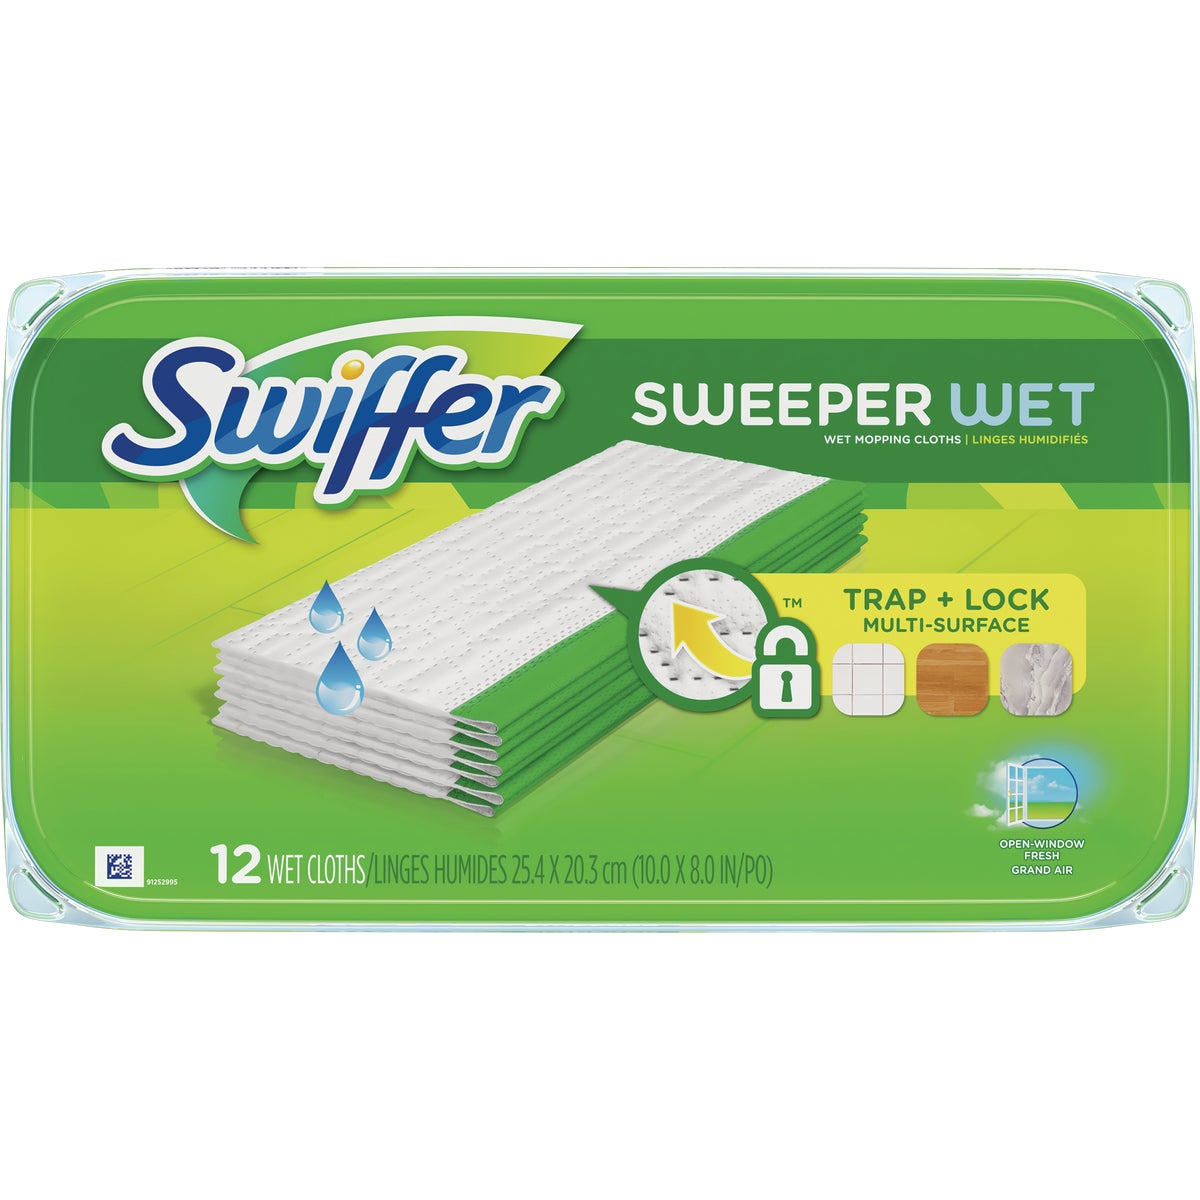 12CT SWIFFER WET CLOTHS - 35154 by Procter & Gamble